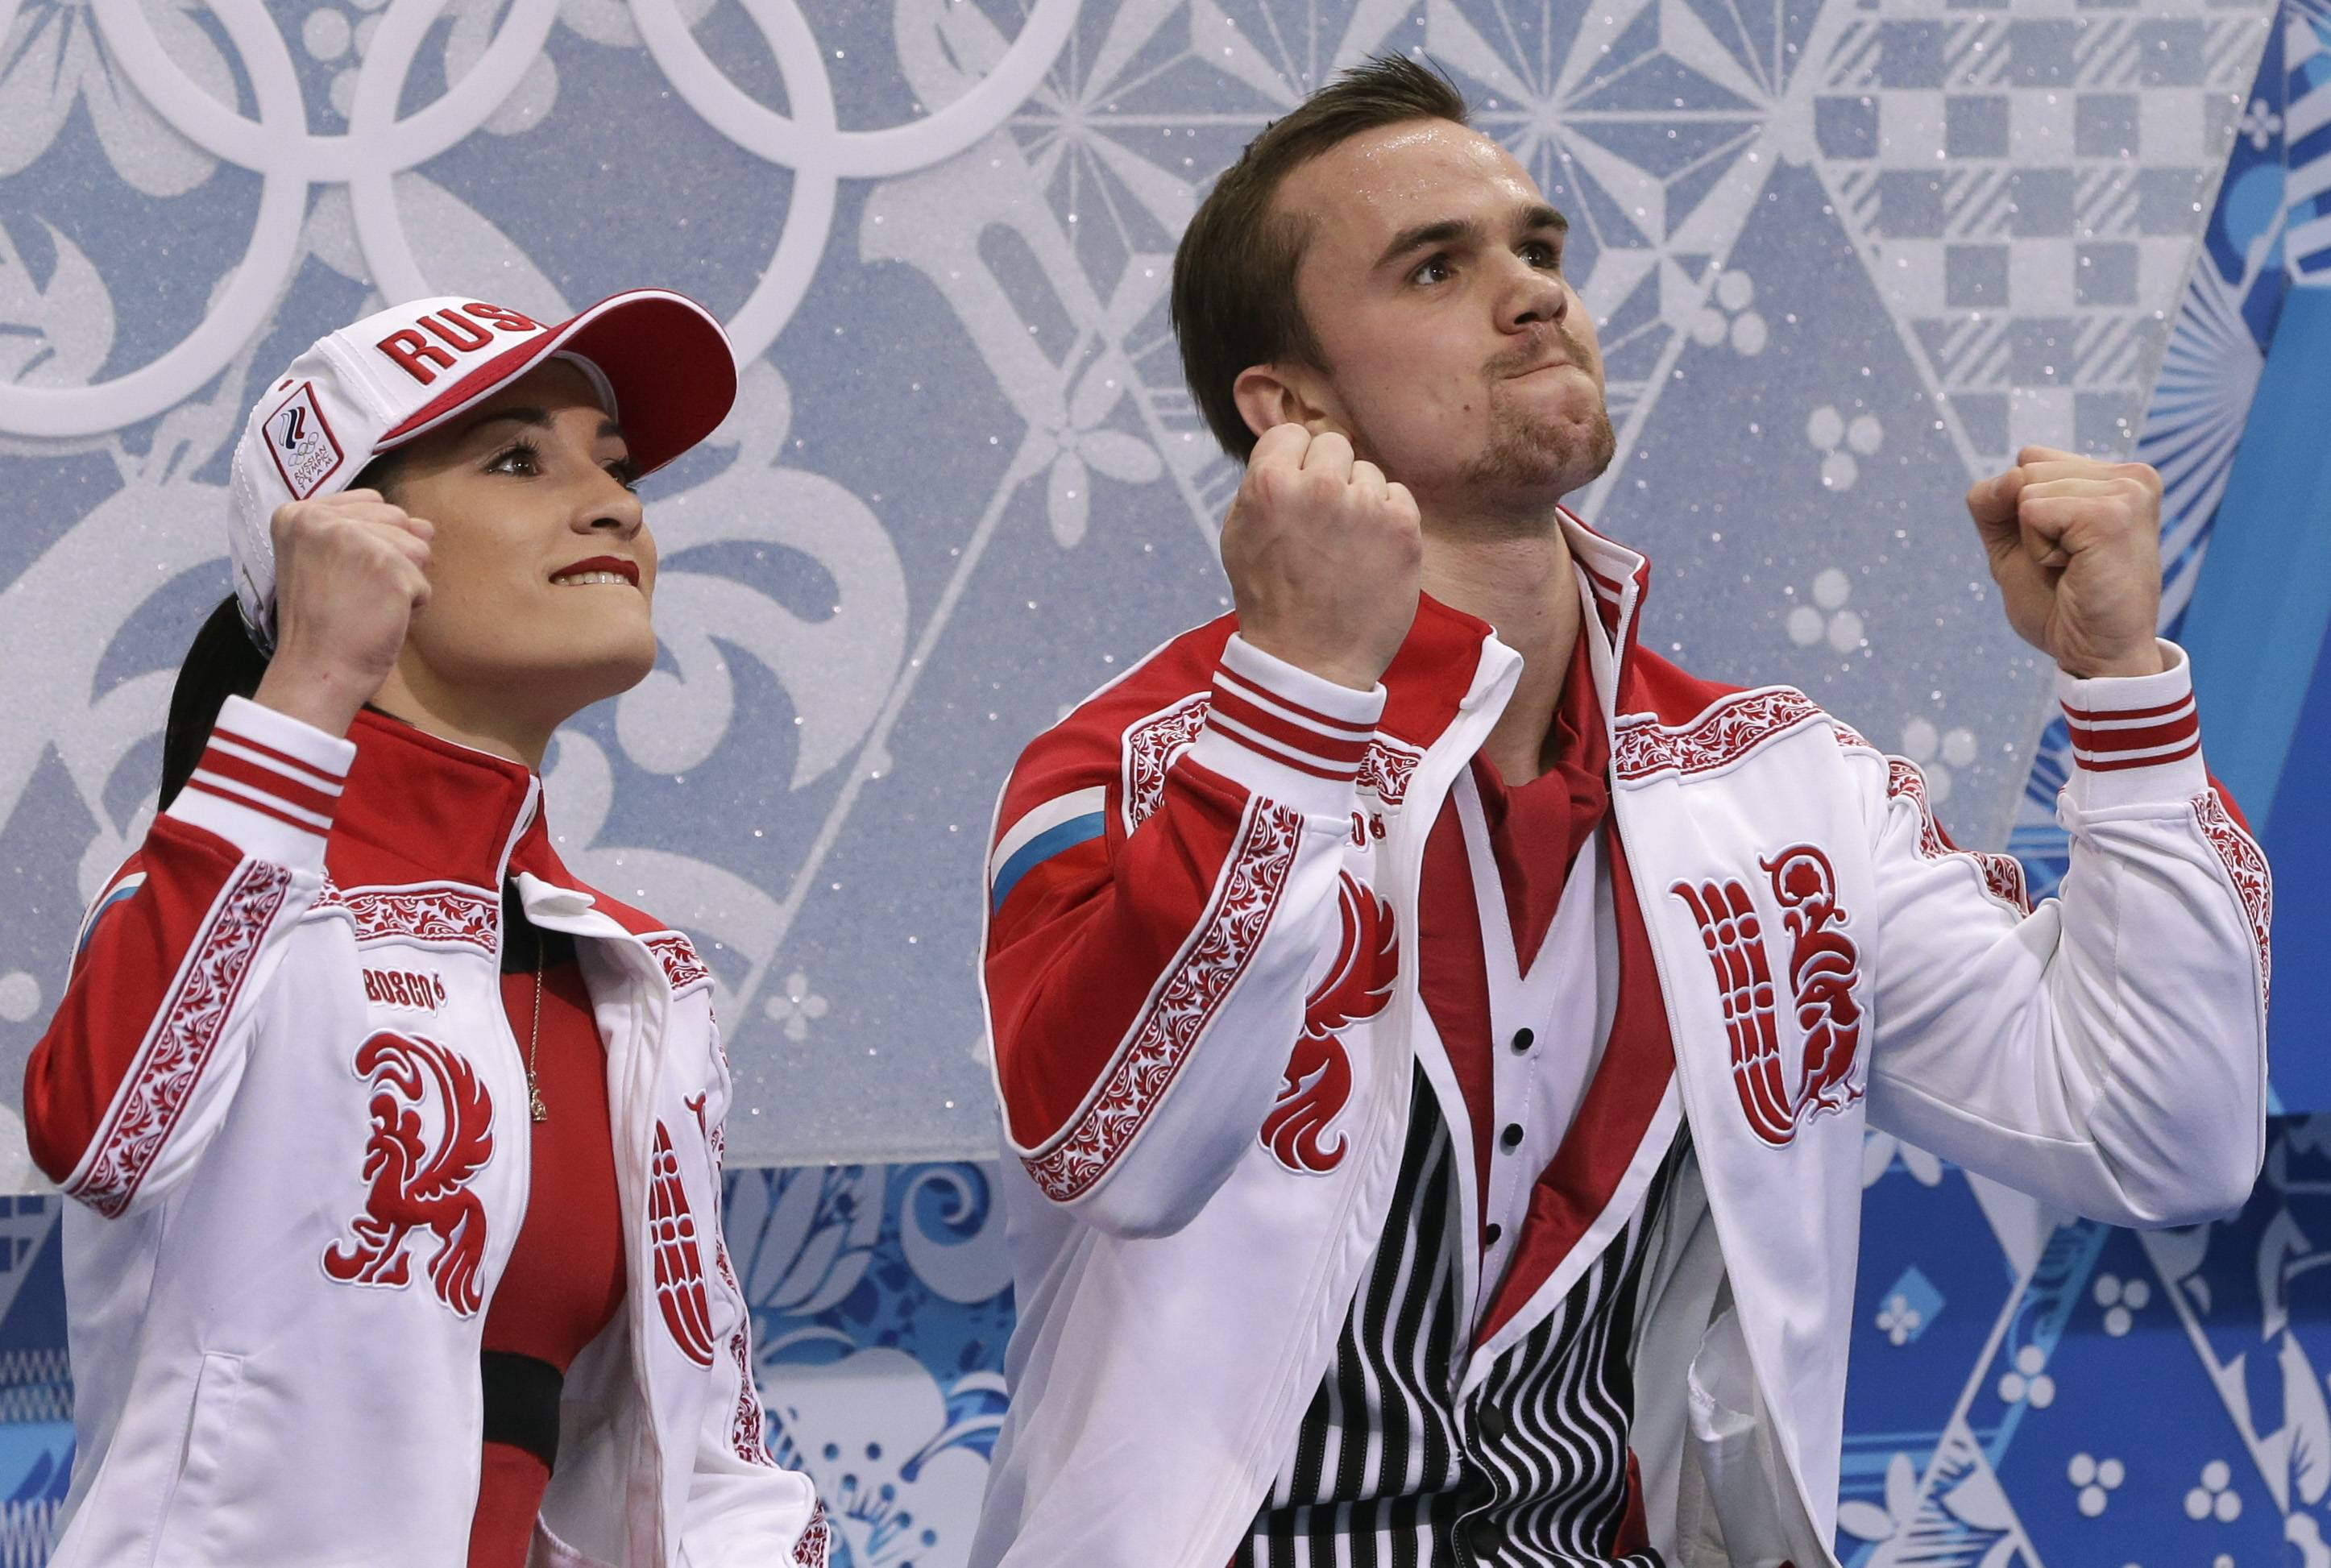 Ksenia Stolbova and Fedor Klimov of Russia react as they wait in the results area after competing in the pairs free skate figure skating.